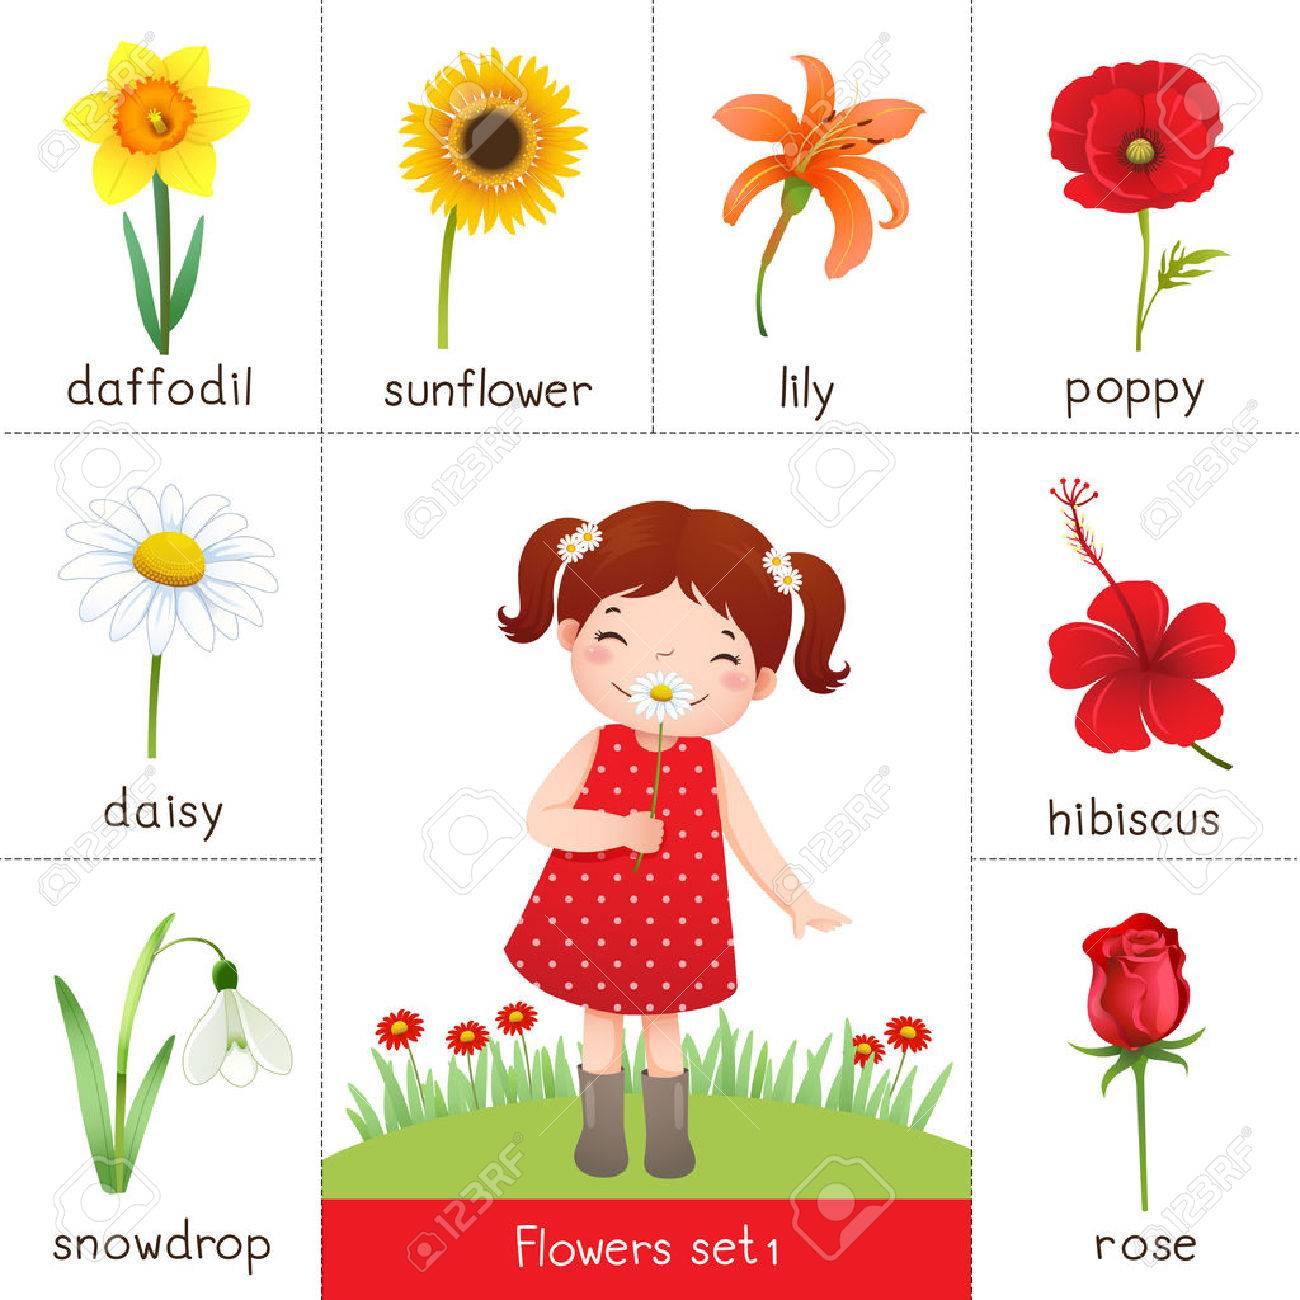 Flower cartoon stock photos royalty free flower cartoon images illustration of printable flash card for flowers and little girl smelling flower izmirmasajfo